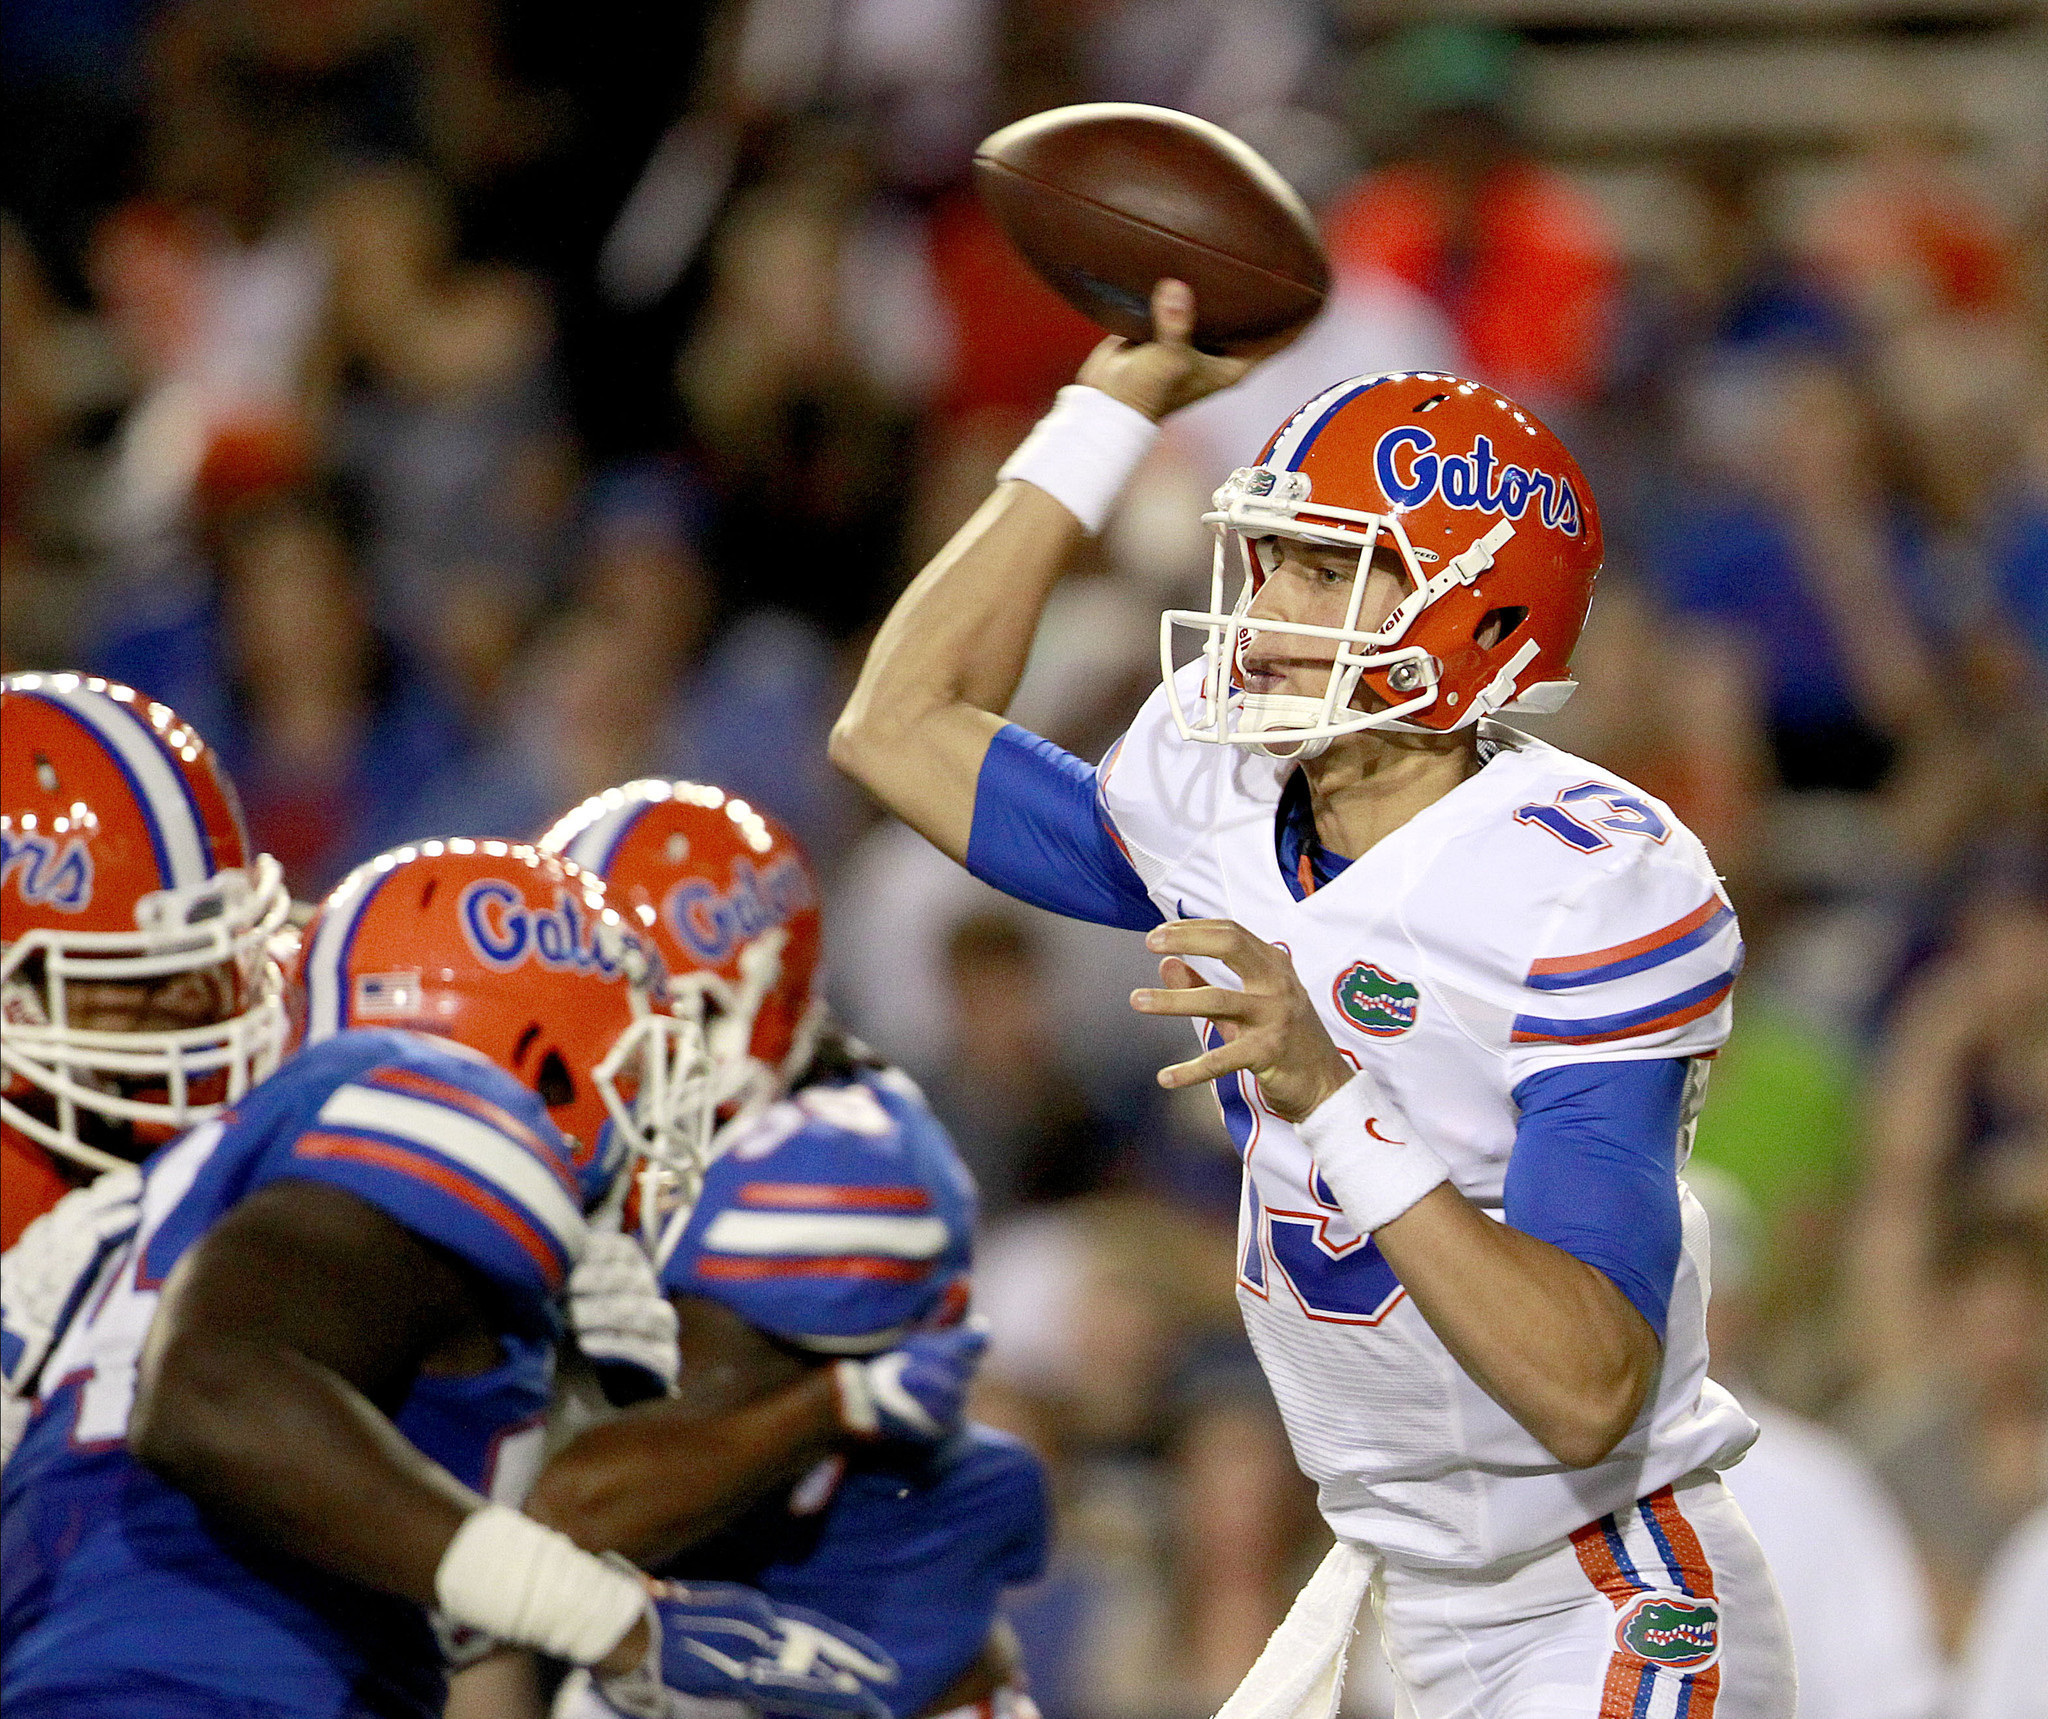 Os-sp-gators-feleipe-franks-0228